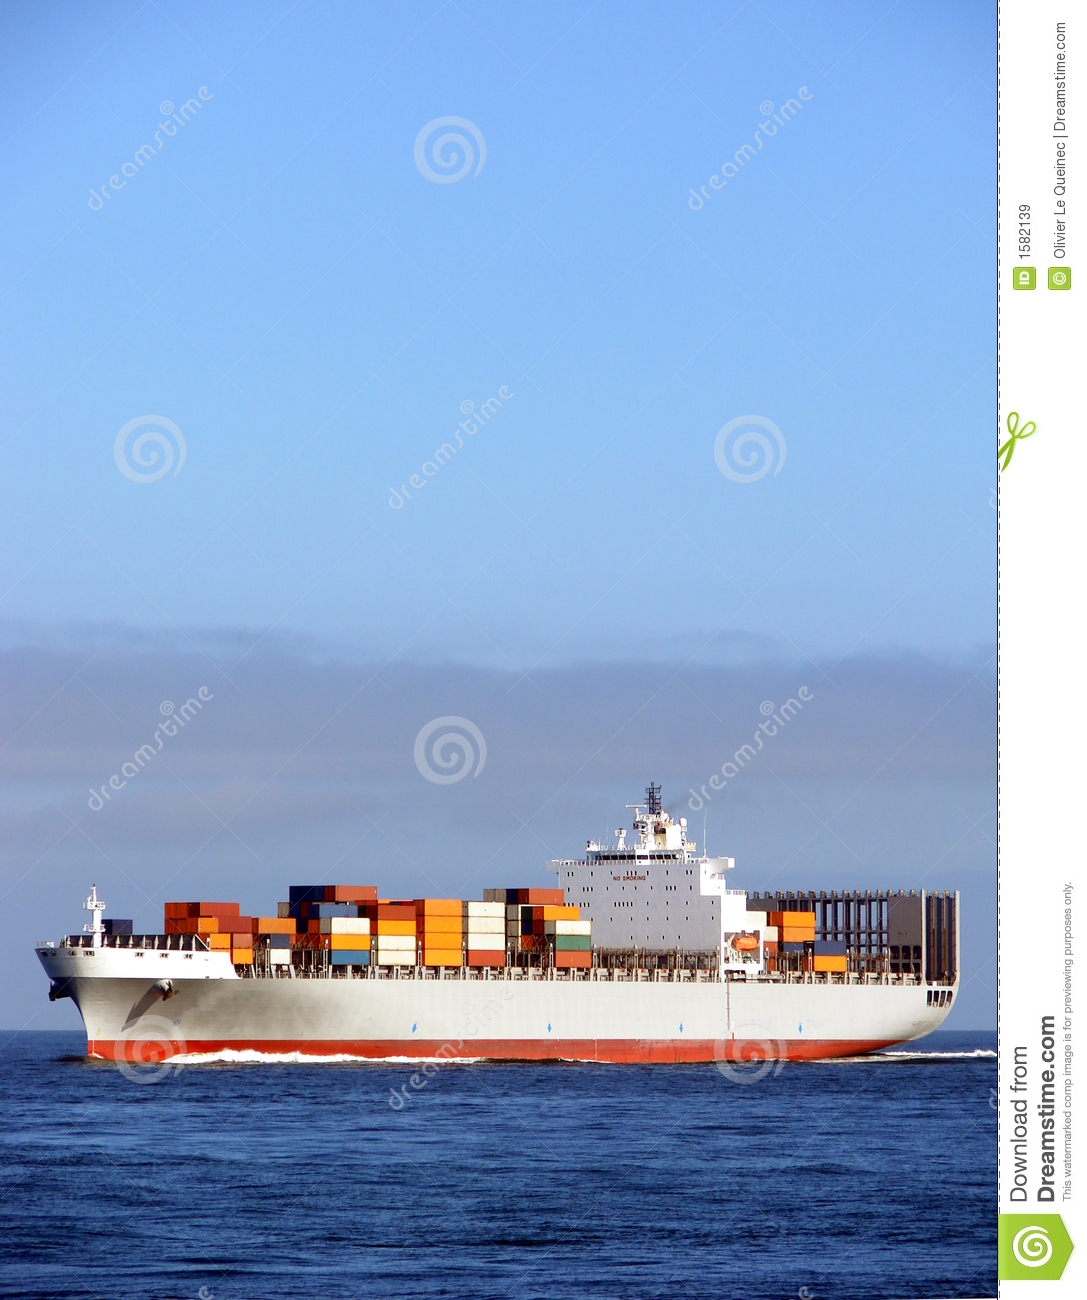 Container Ship with Deck Cargo Load Sailing at Sea